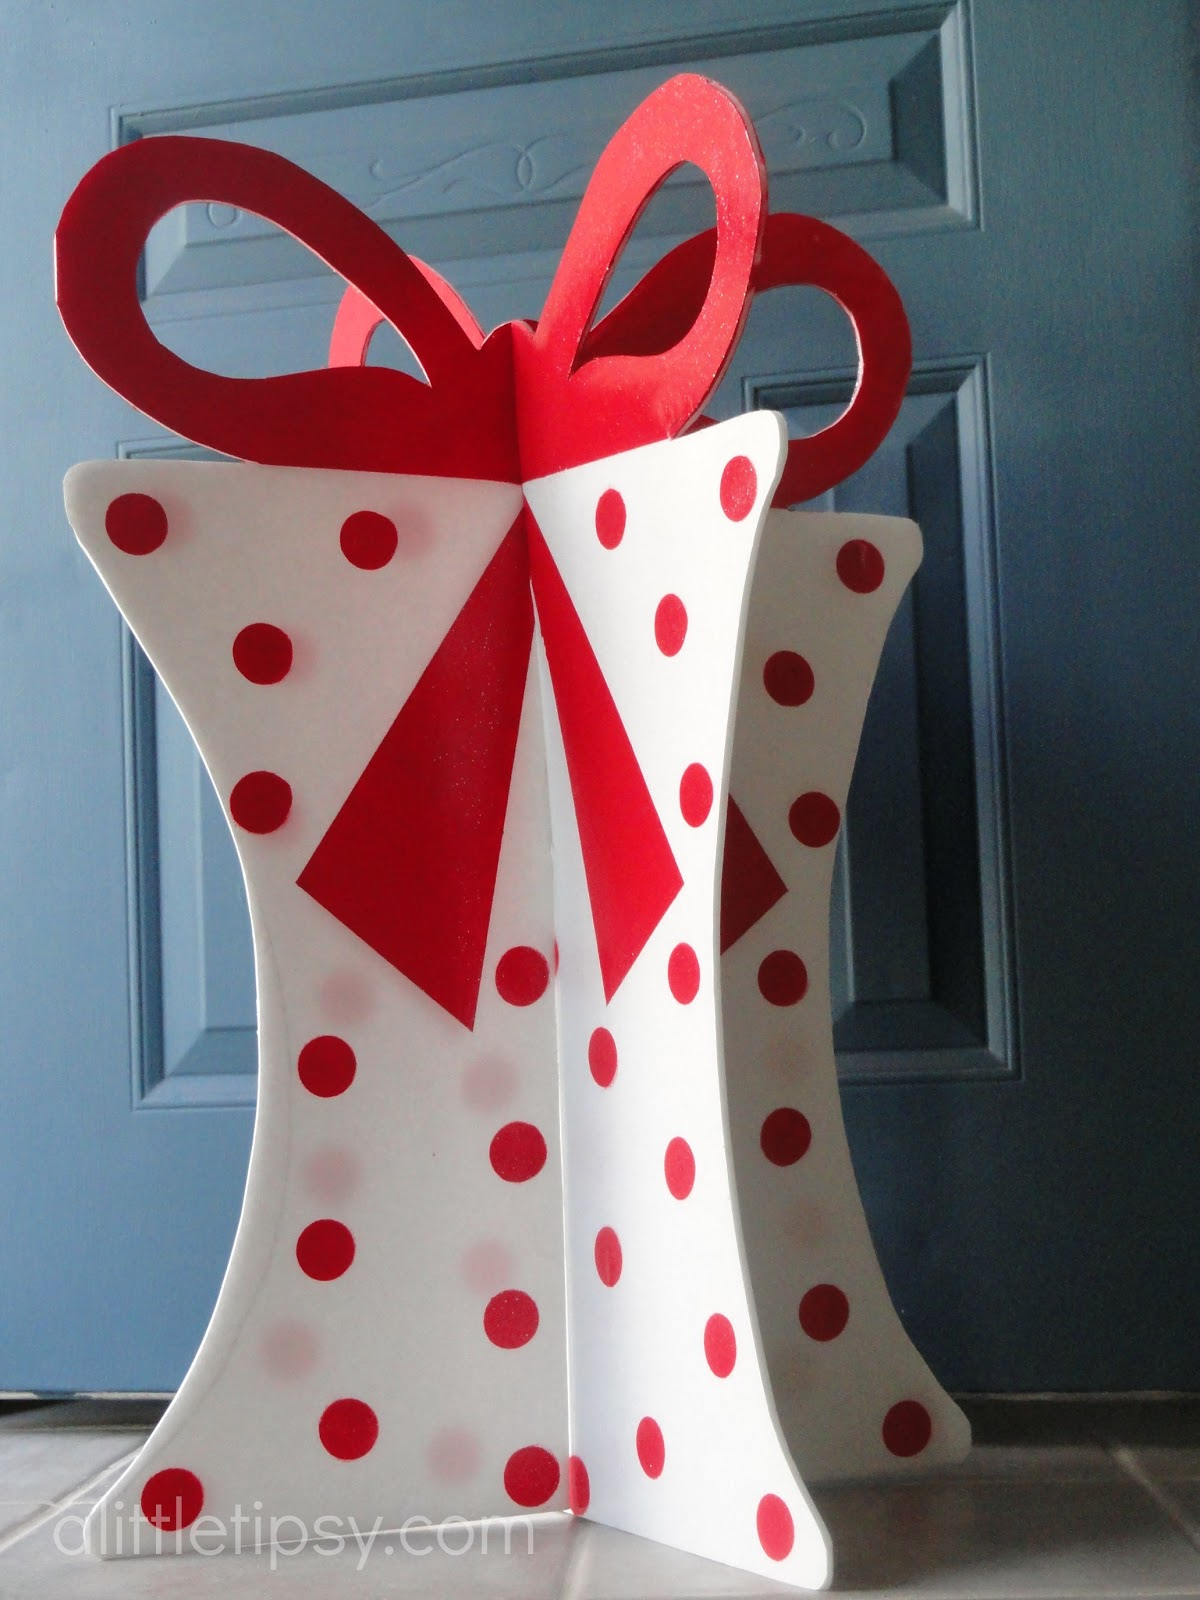 Diy Christmas Decorations For Living Room: DIY Christmas Decorations & Wal-Mart Card GIVEAWAY